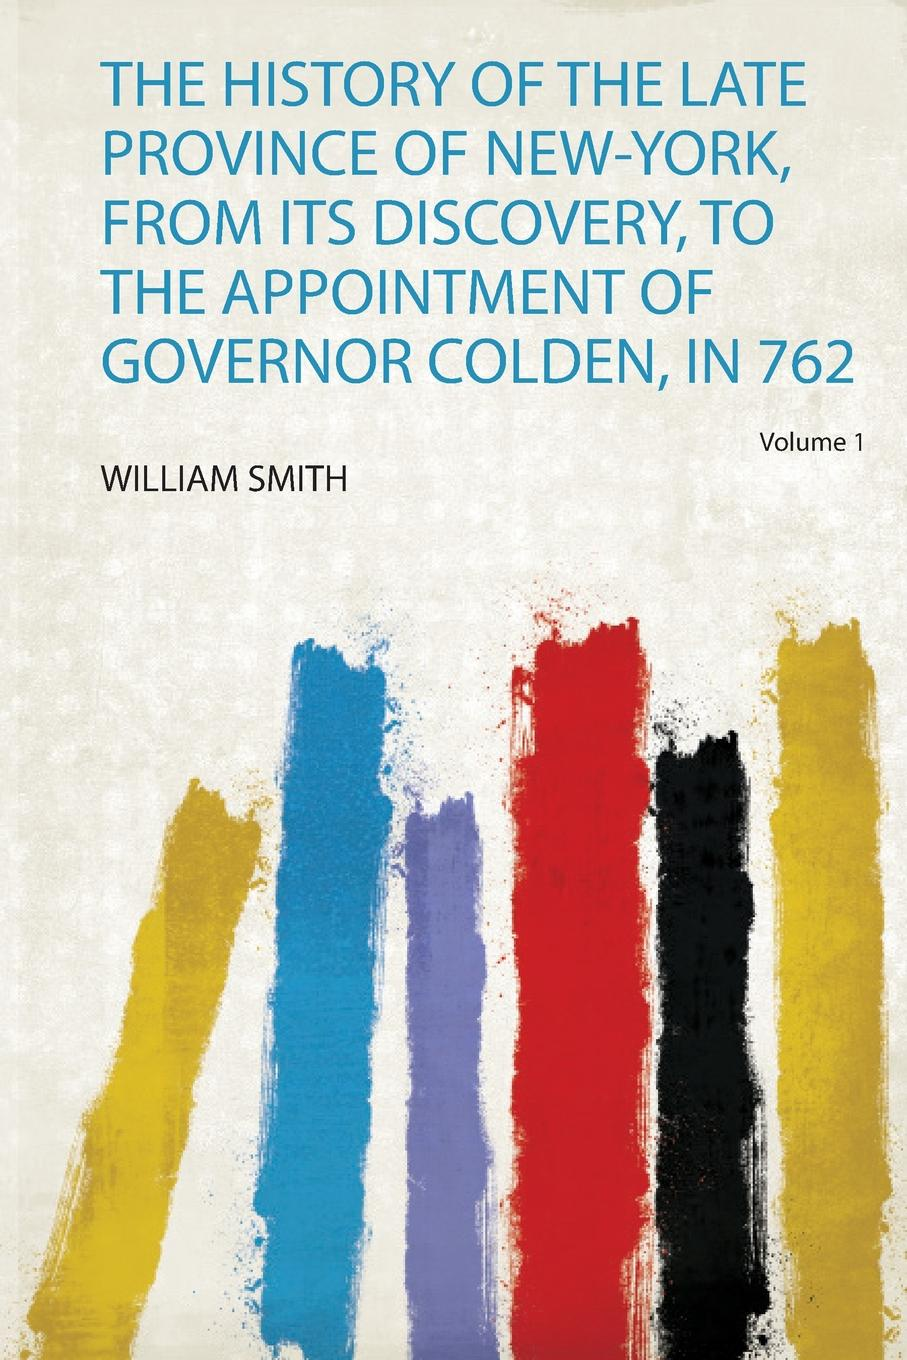 William Smith The History of the Late Province of New-York, from Its Discovery, to the Appointment of Governor Colden, in 762 Volume 1 william abbatt a history of the united states and its people from their earliest records to the present time volume 6